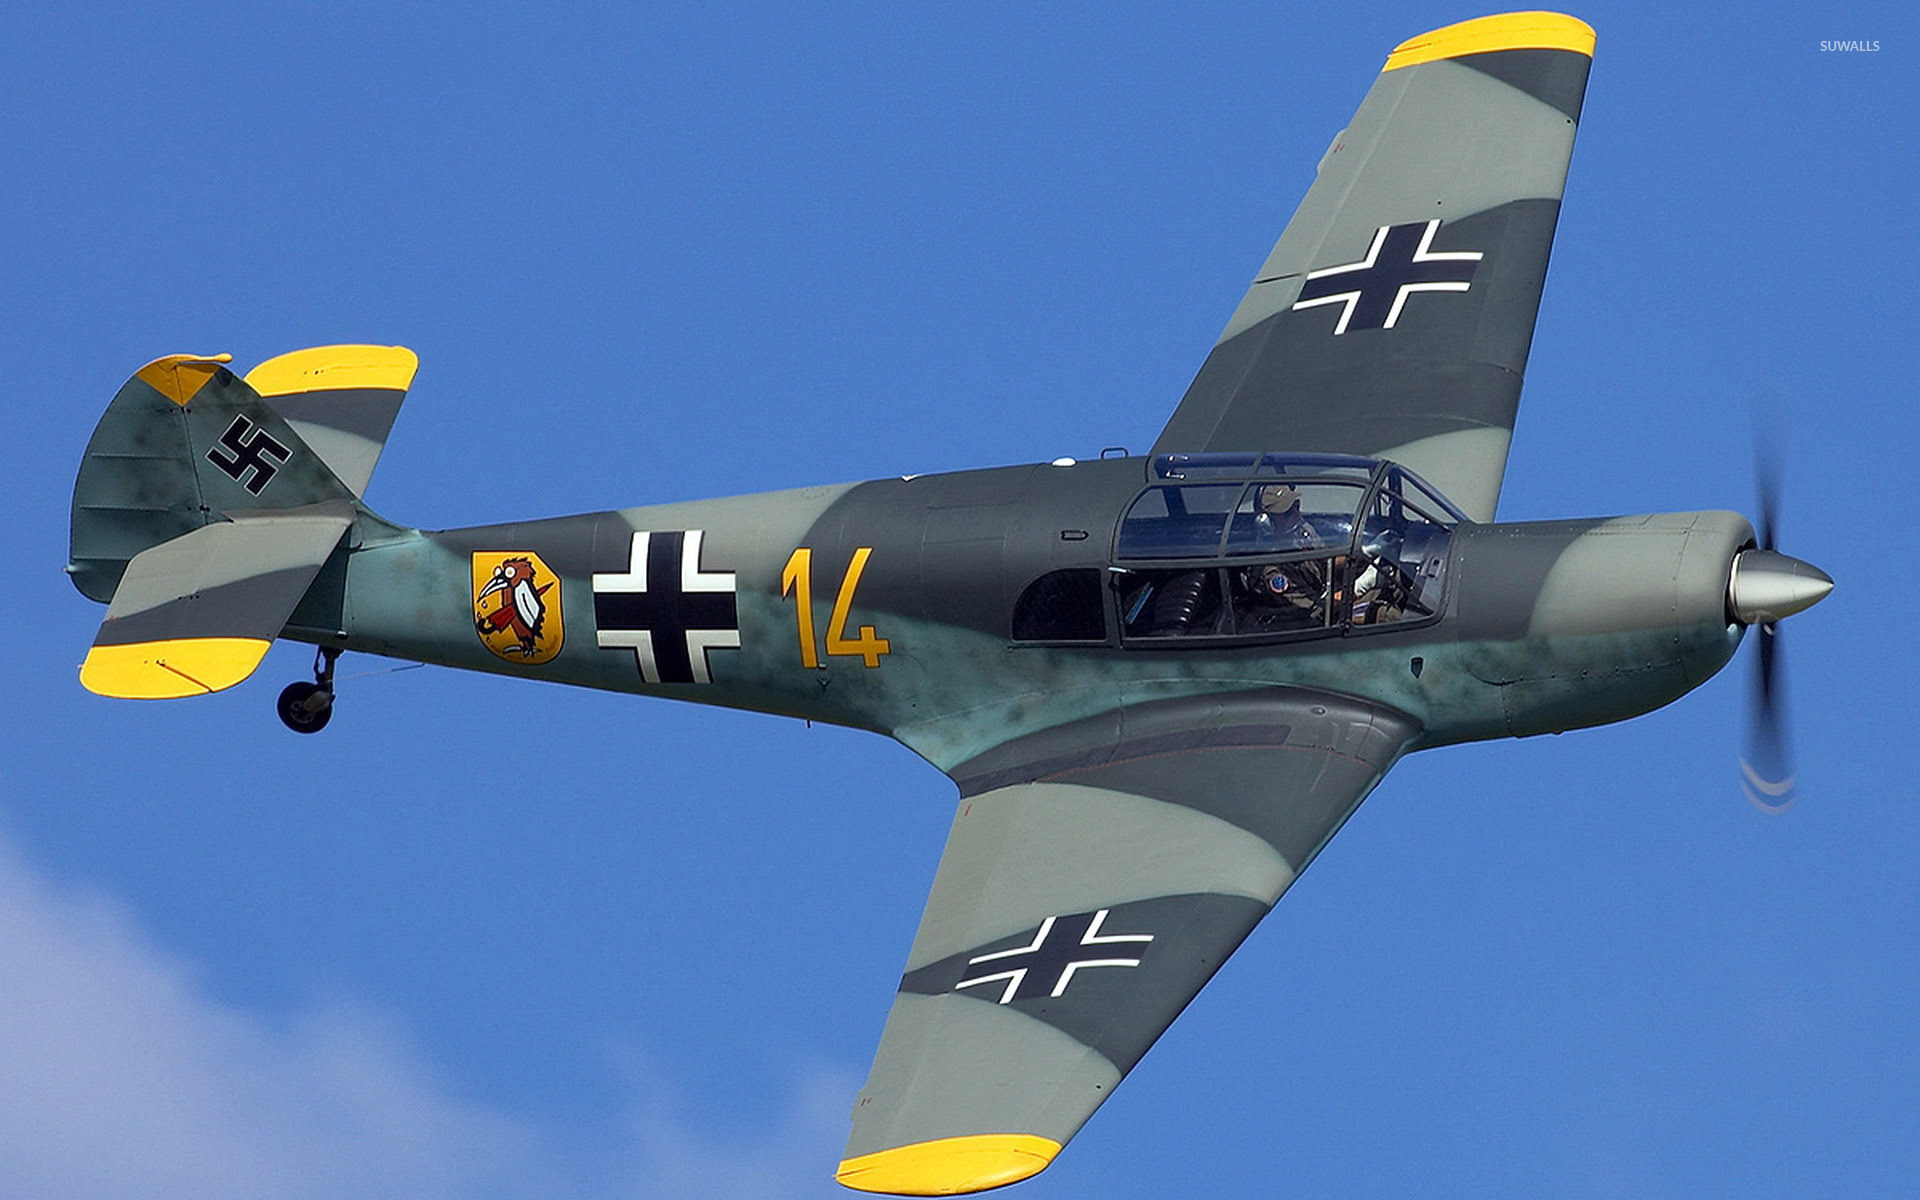 Messerschmitt Bf 108 wallpaper - Aircraft wallpapers - #33353